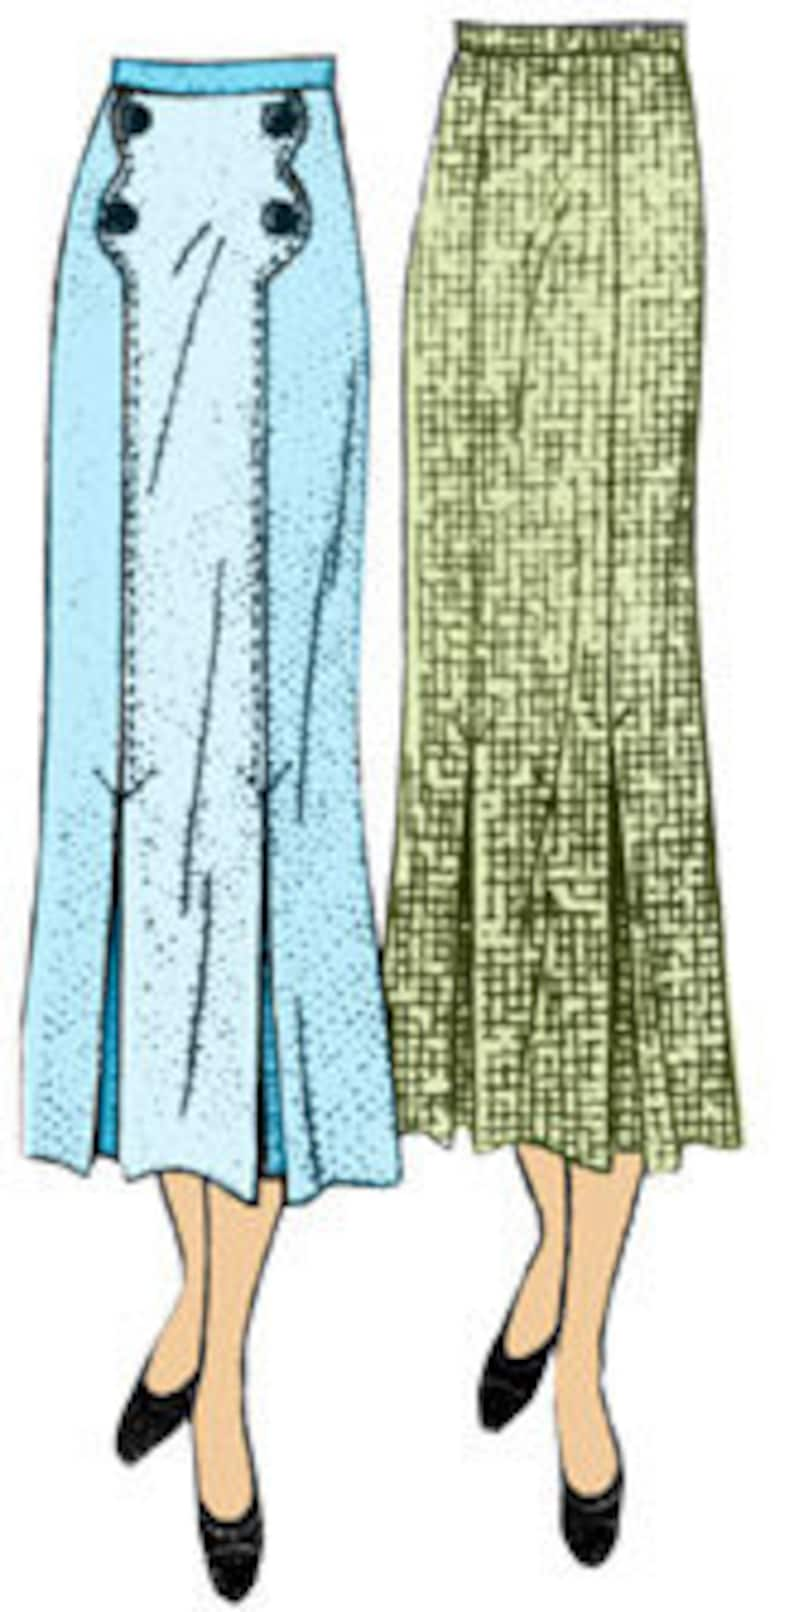 1930s Sewing Patterns- Dresses, Pants, Tops 1930s Ladies Skirt With Patch Pockets - INSTANT DOWNLOAD - Reproduction 1936 Sewing Pattern #T1047 - 30 Inch Waist - PDF - Print At Home $9.00 AT vintagedancer.com